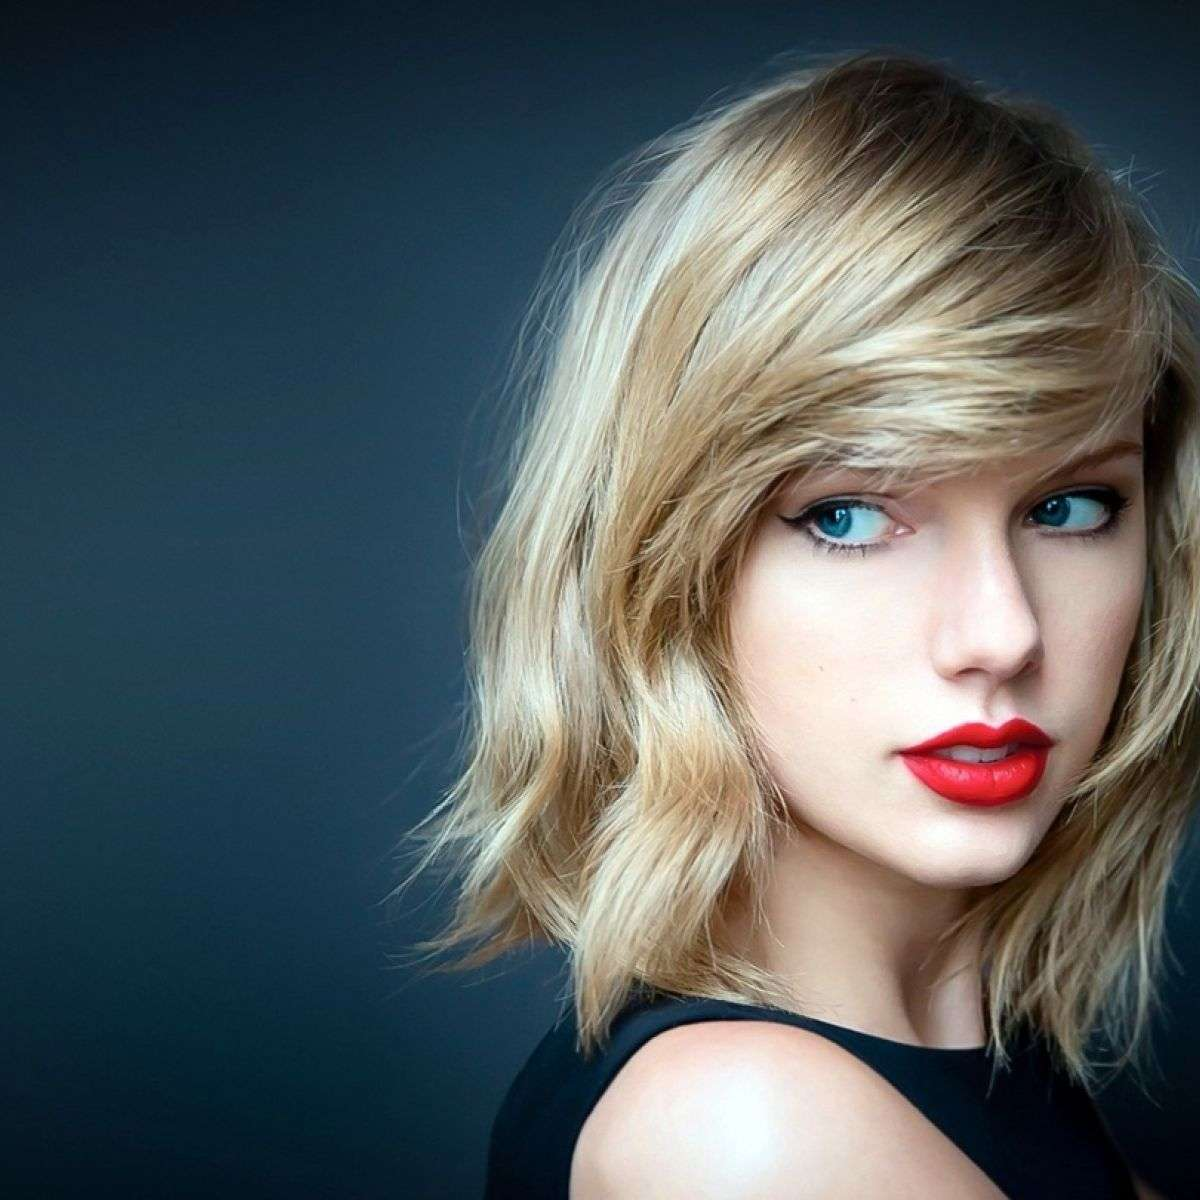 The most in beautiful world celebrities 10 Most